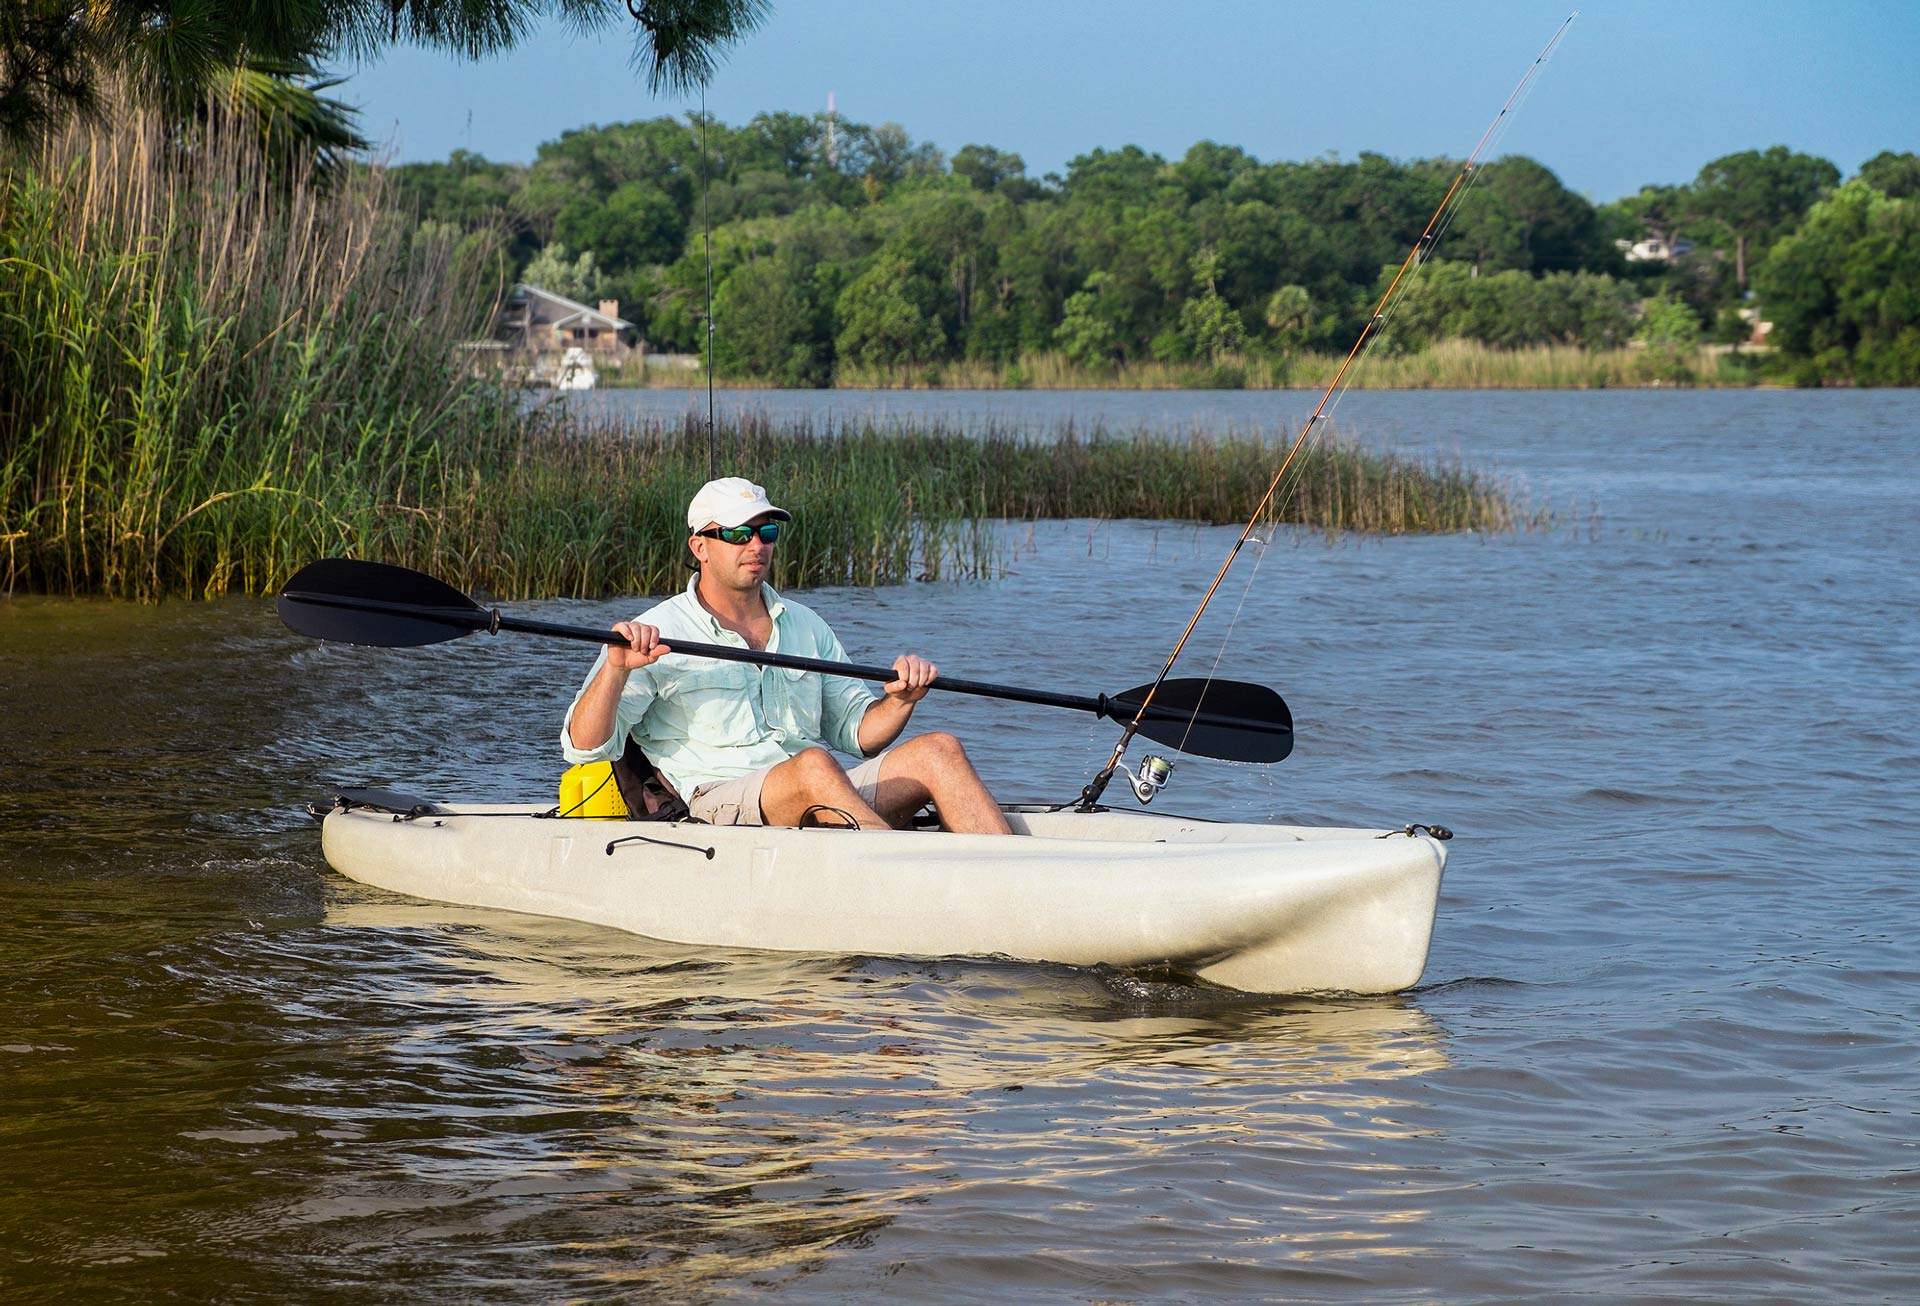 A man in a kayak with a fishing rod on the water rowing